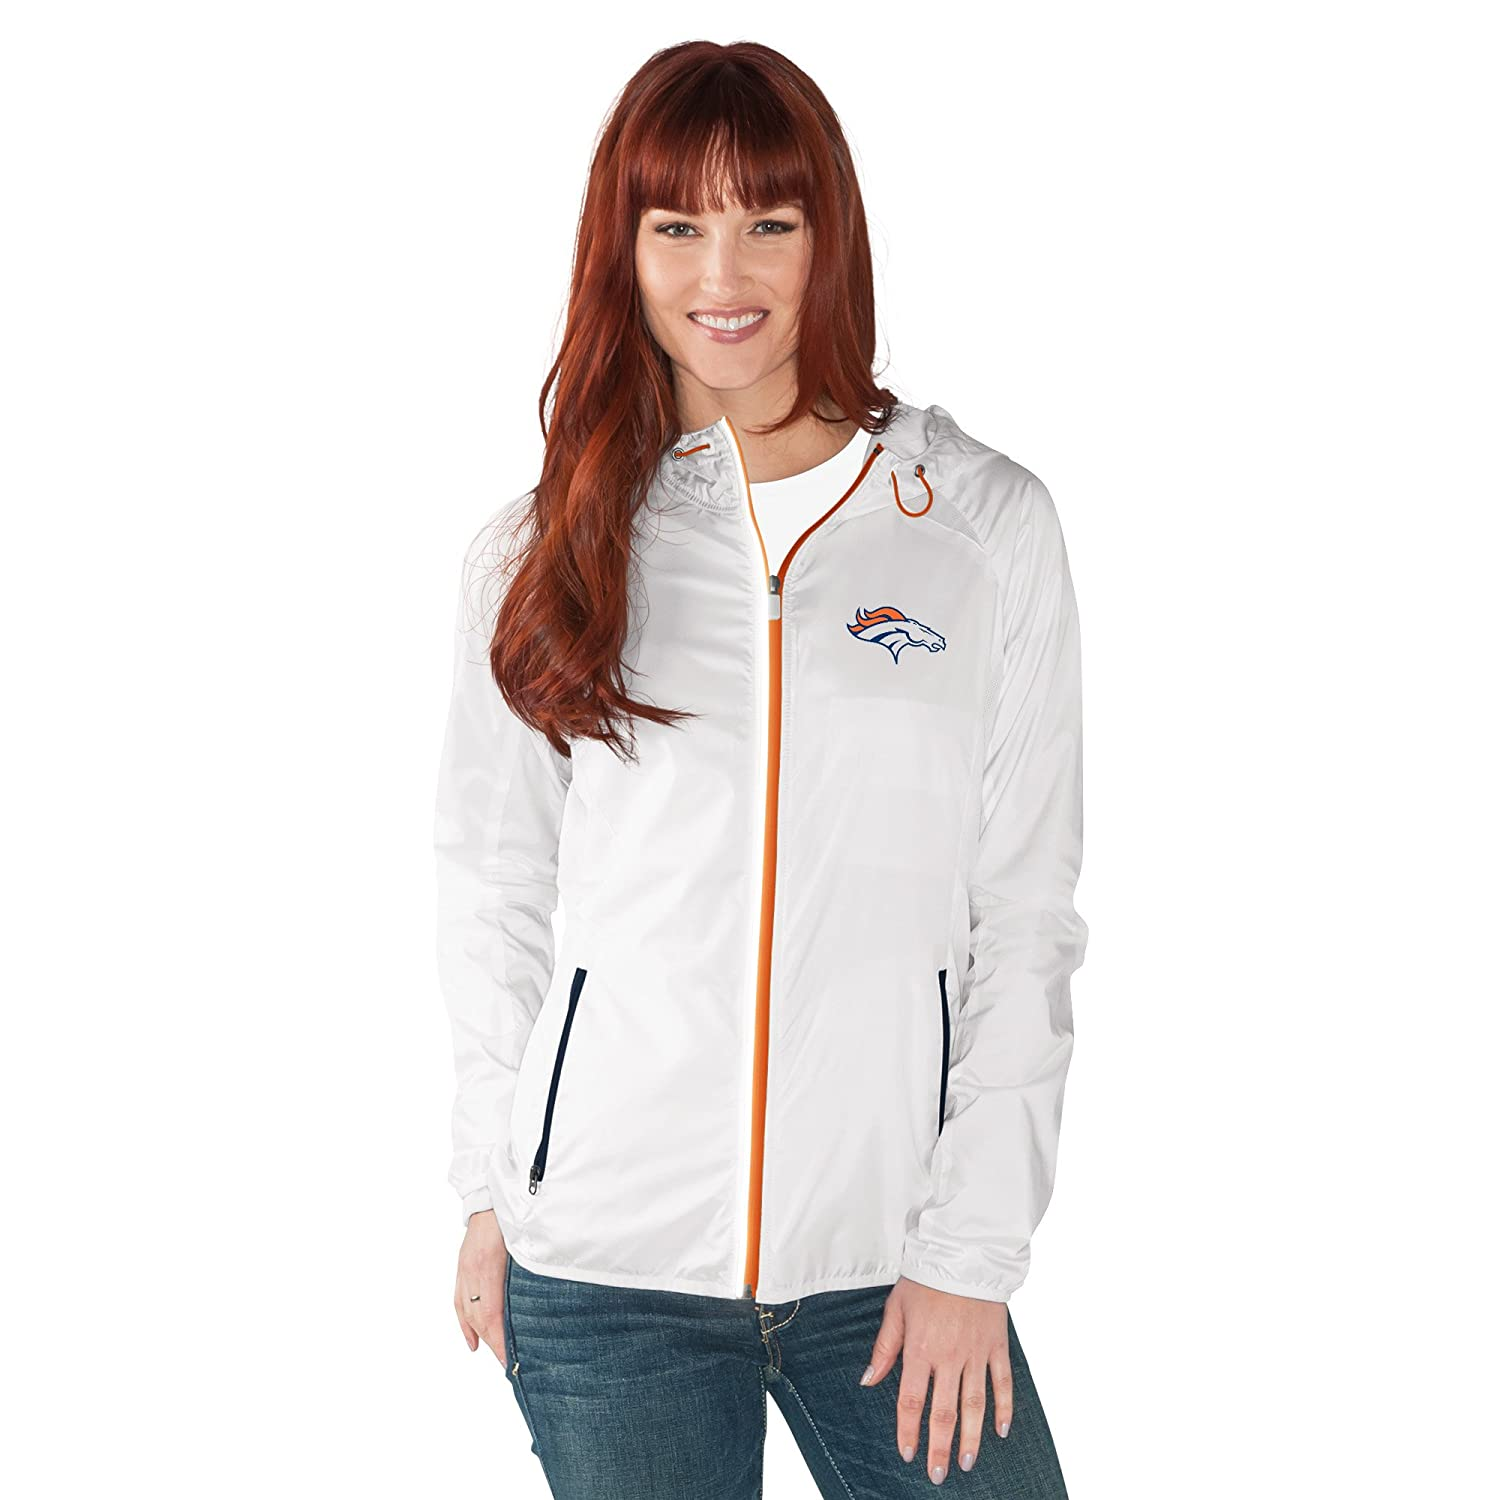 X-Large G-III Womens Spring Training Light Weight Full Zip Jacket White